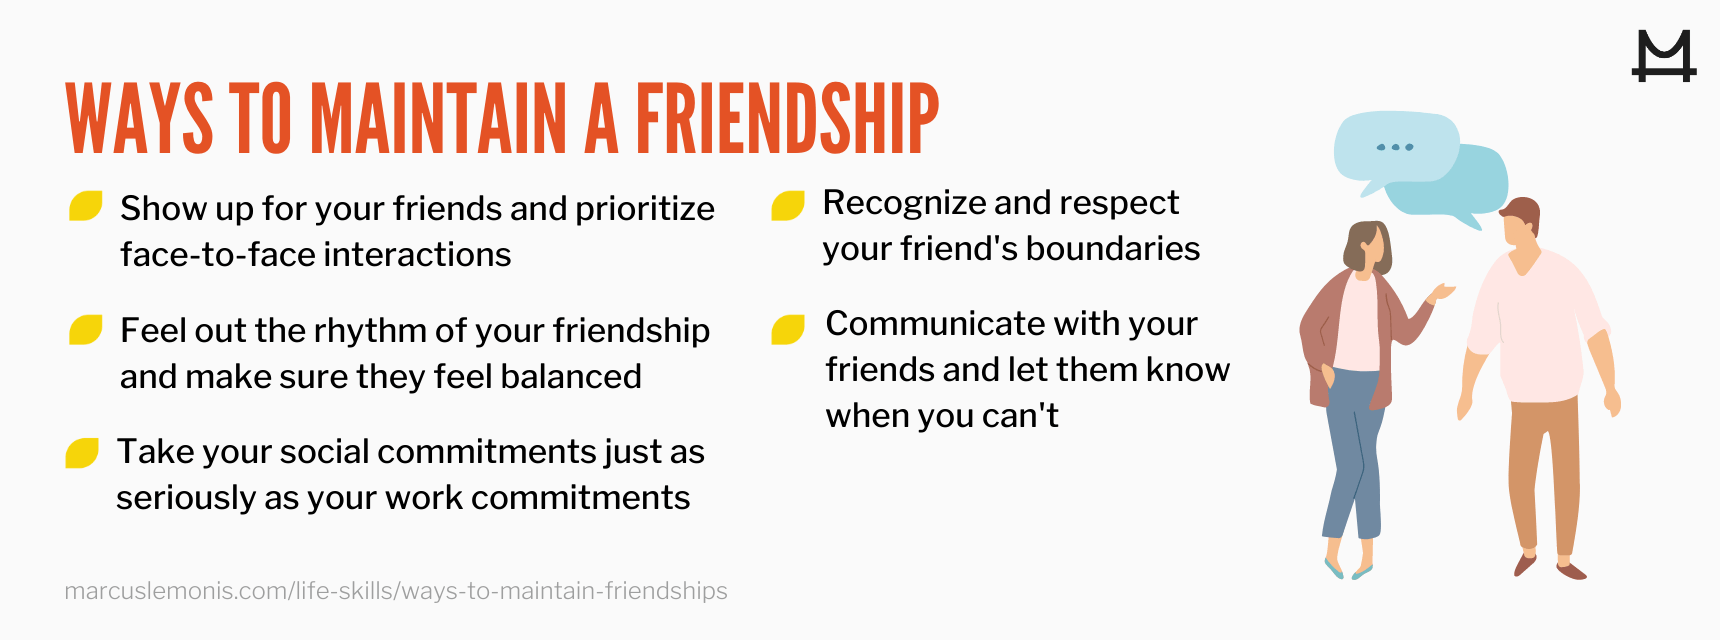 List of 5 ways you can maintain a friendship